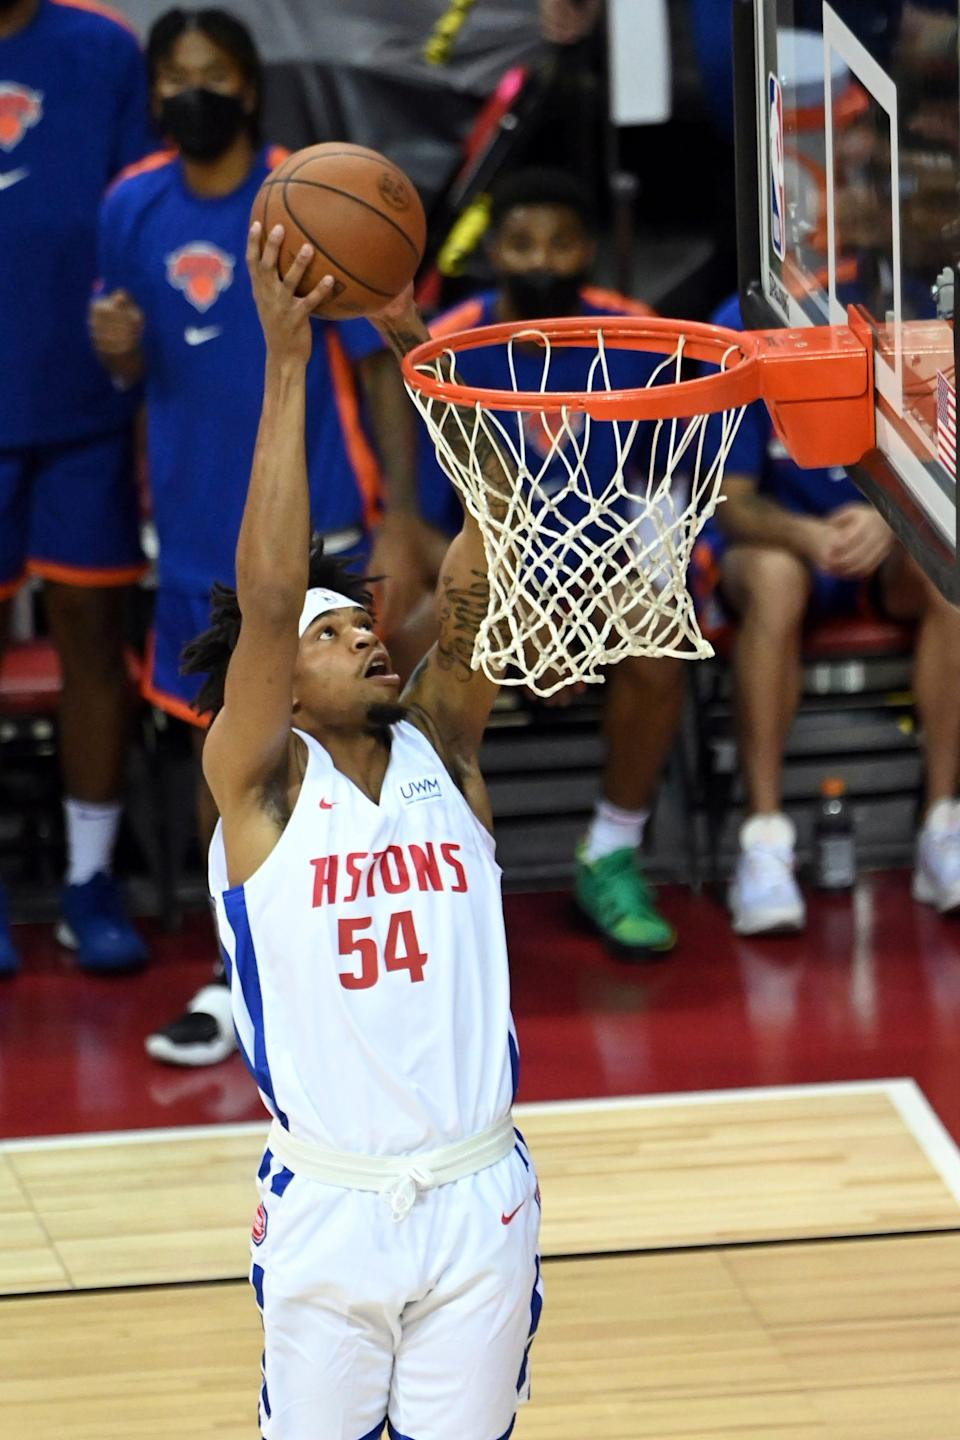 Pistons forward Jamorko Pickett dunks against the Knicks during the Summer League game on Friday, Aug. 13, 2021, in Las Vegas.